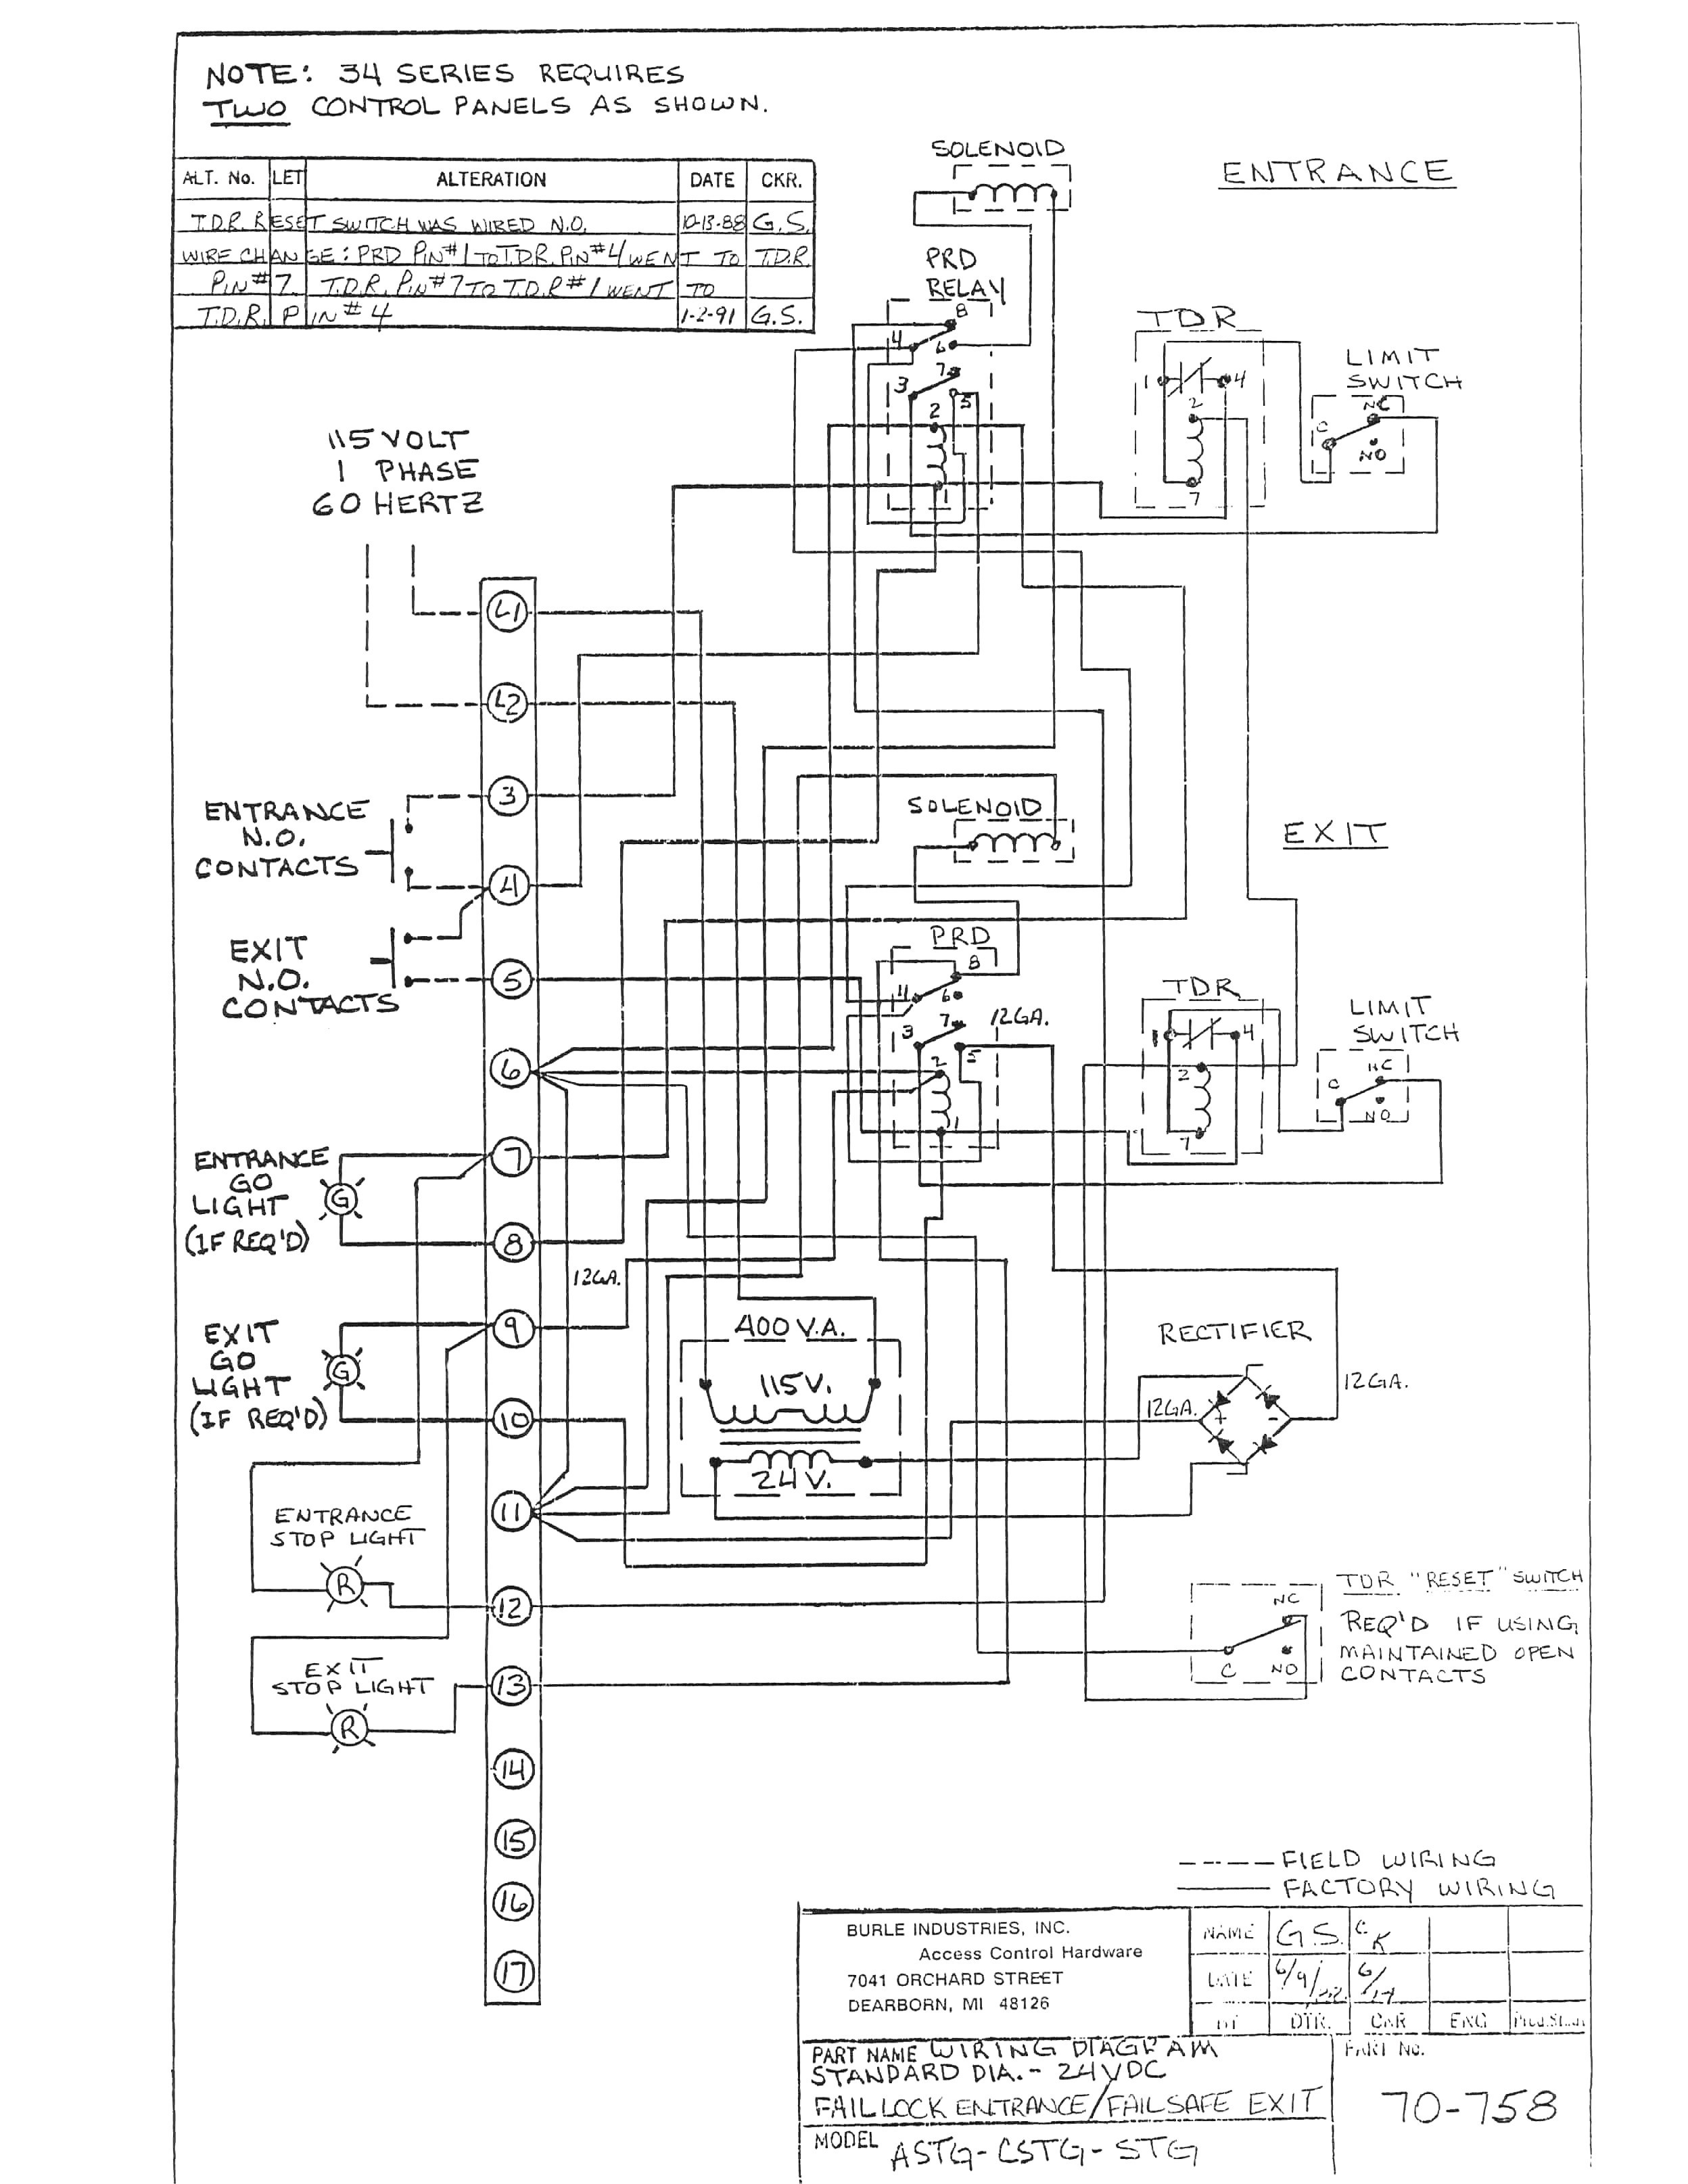 Trane Heat Pump Wiring Schematic - Single Phase Acme Transformer Wiring  Diagrams - pontiacs.tukune.jeanjaures37.fr | Hvac Wiring Diagram For Trane 1200 Xl |  | Wiring Diagram Resource